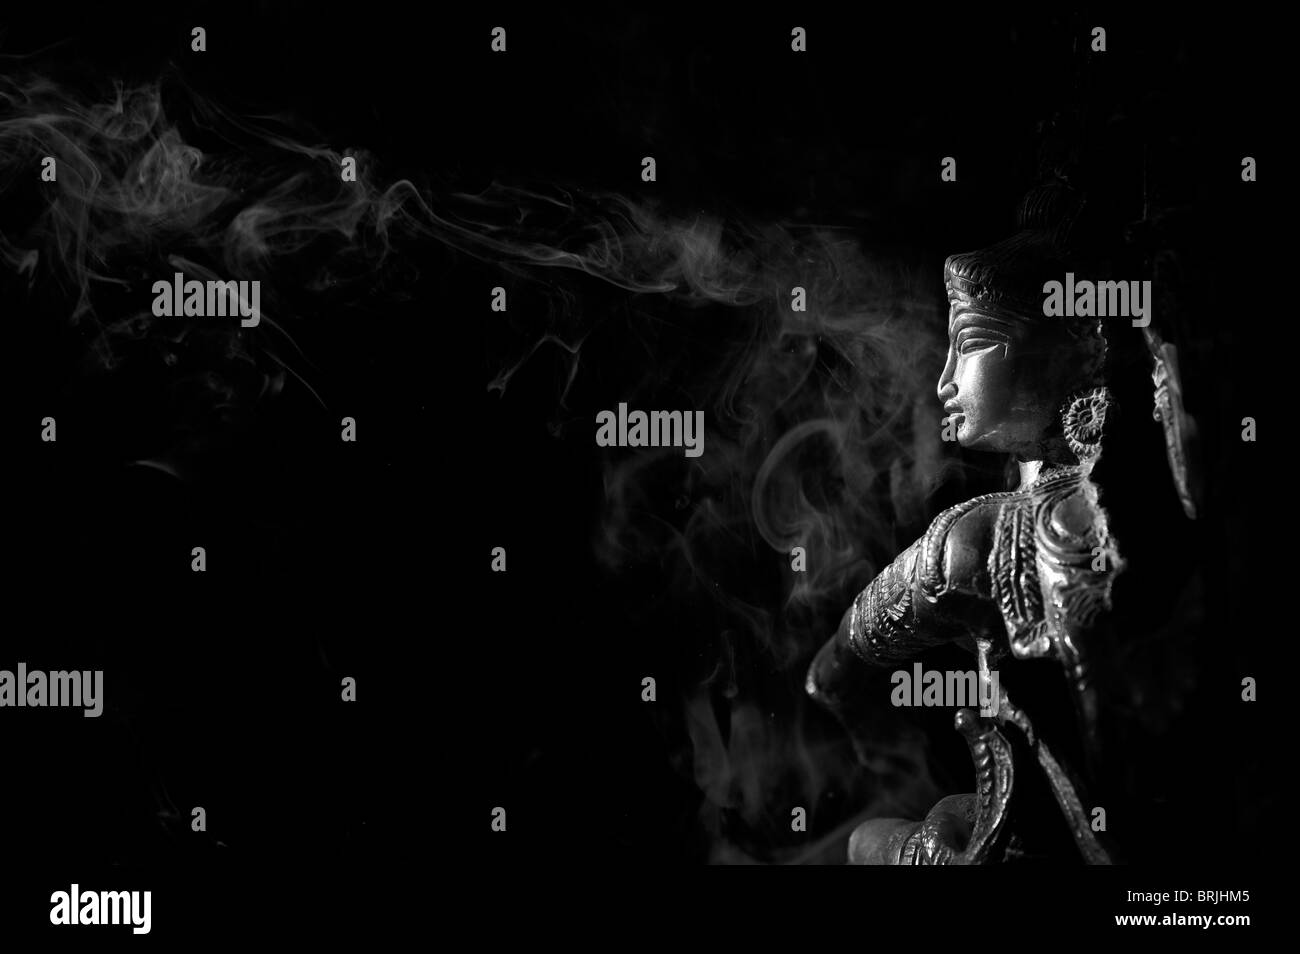 Dancing lord Shiva statue. Nataraja with incense smoke against black background. India. Black and White - Stock Image